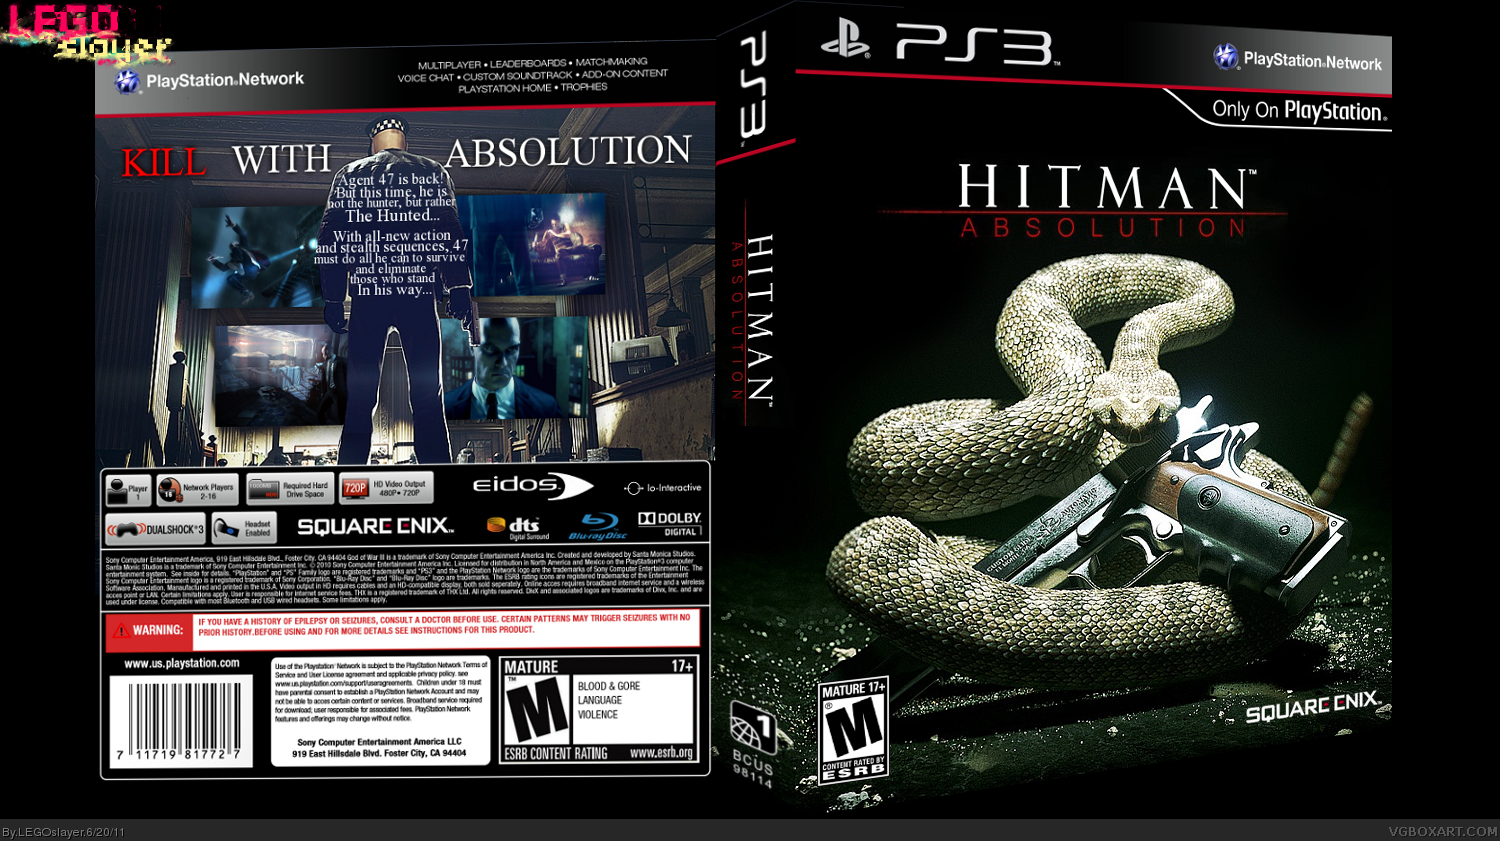 Hitman Absolution box cover